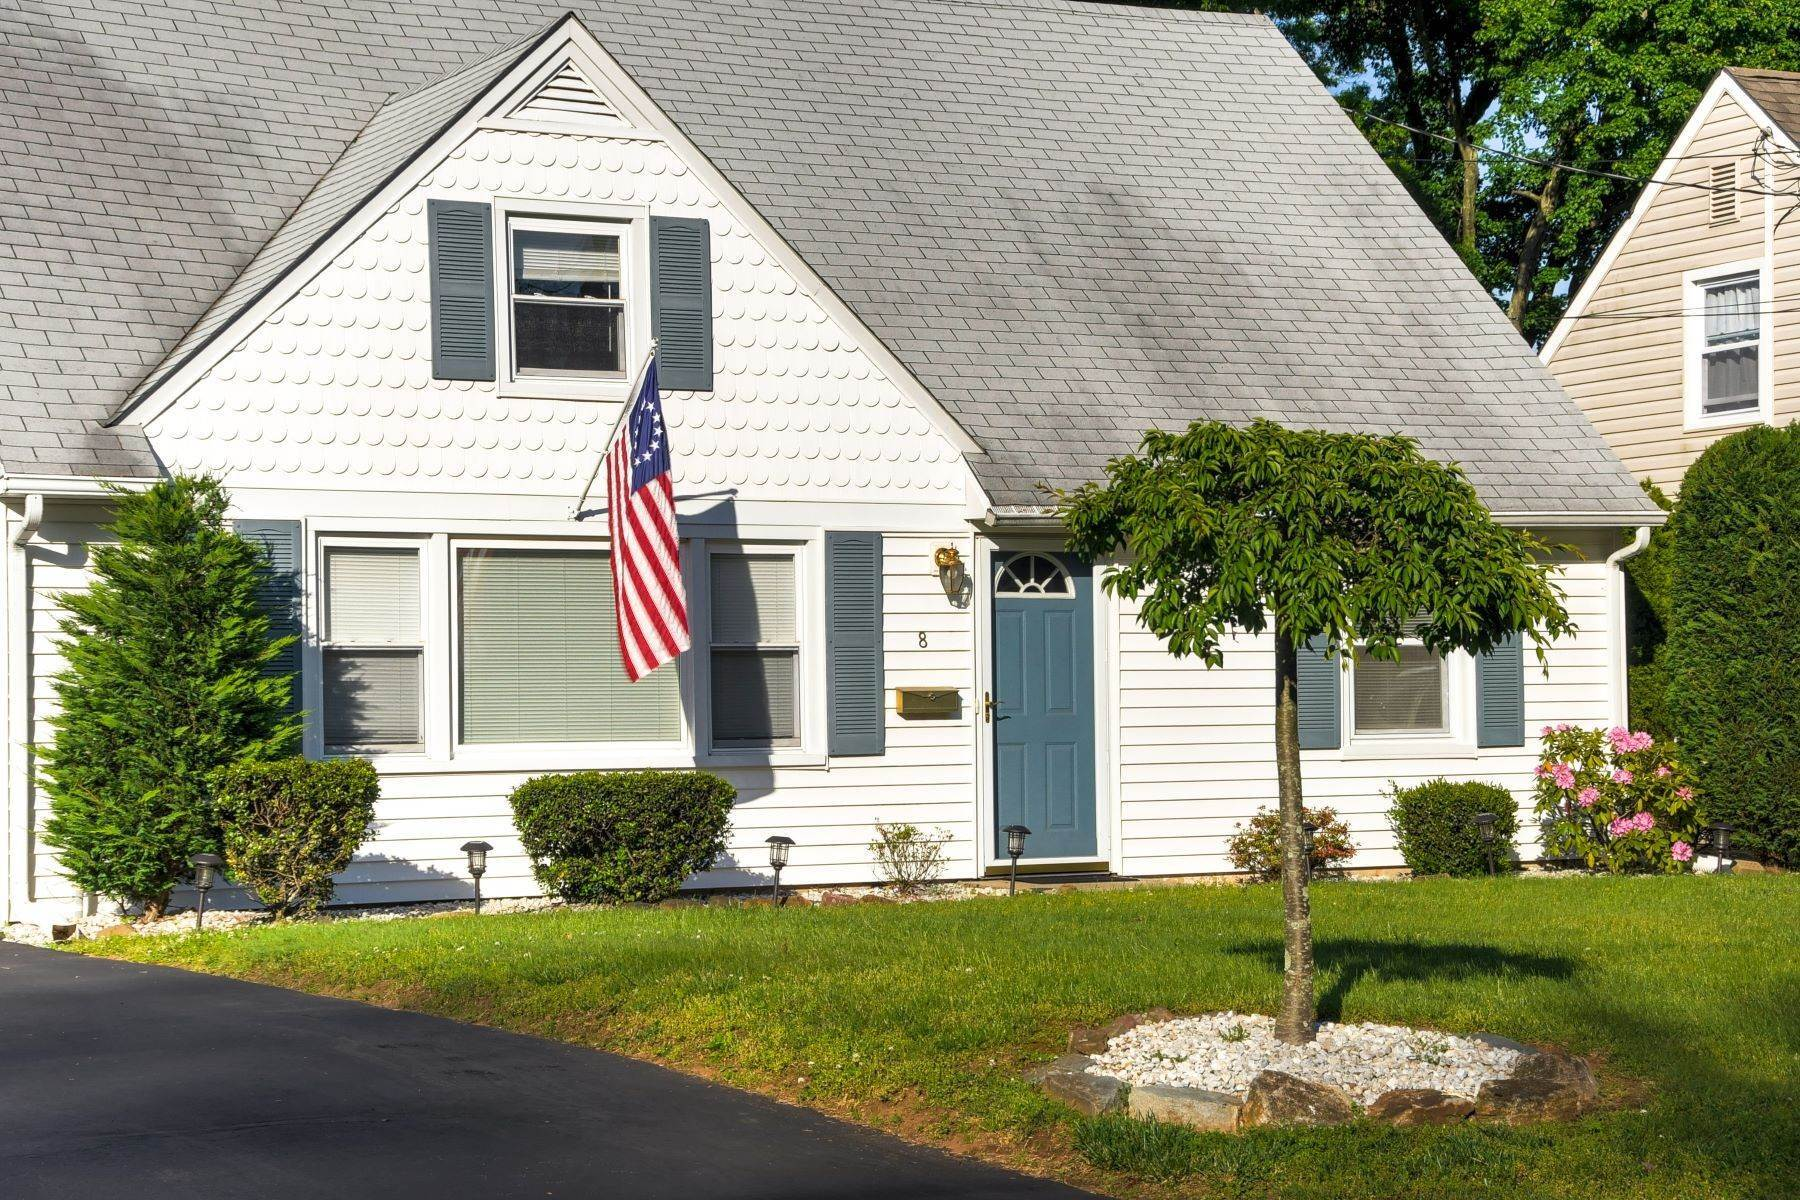 Single Family Homes のために 売買 アット Charming Cape Cod 8 Tuttle Street Green Brook Township, ニュージャージー 08812 アメリカ